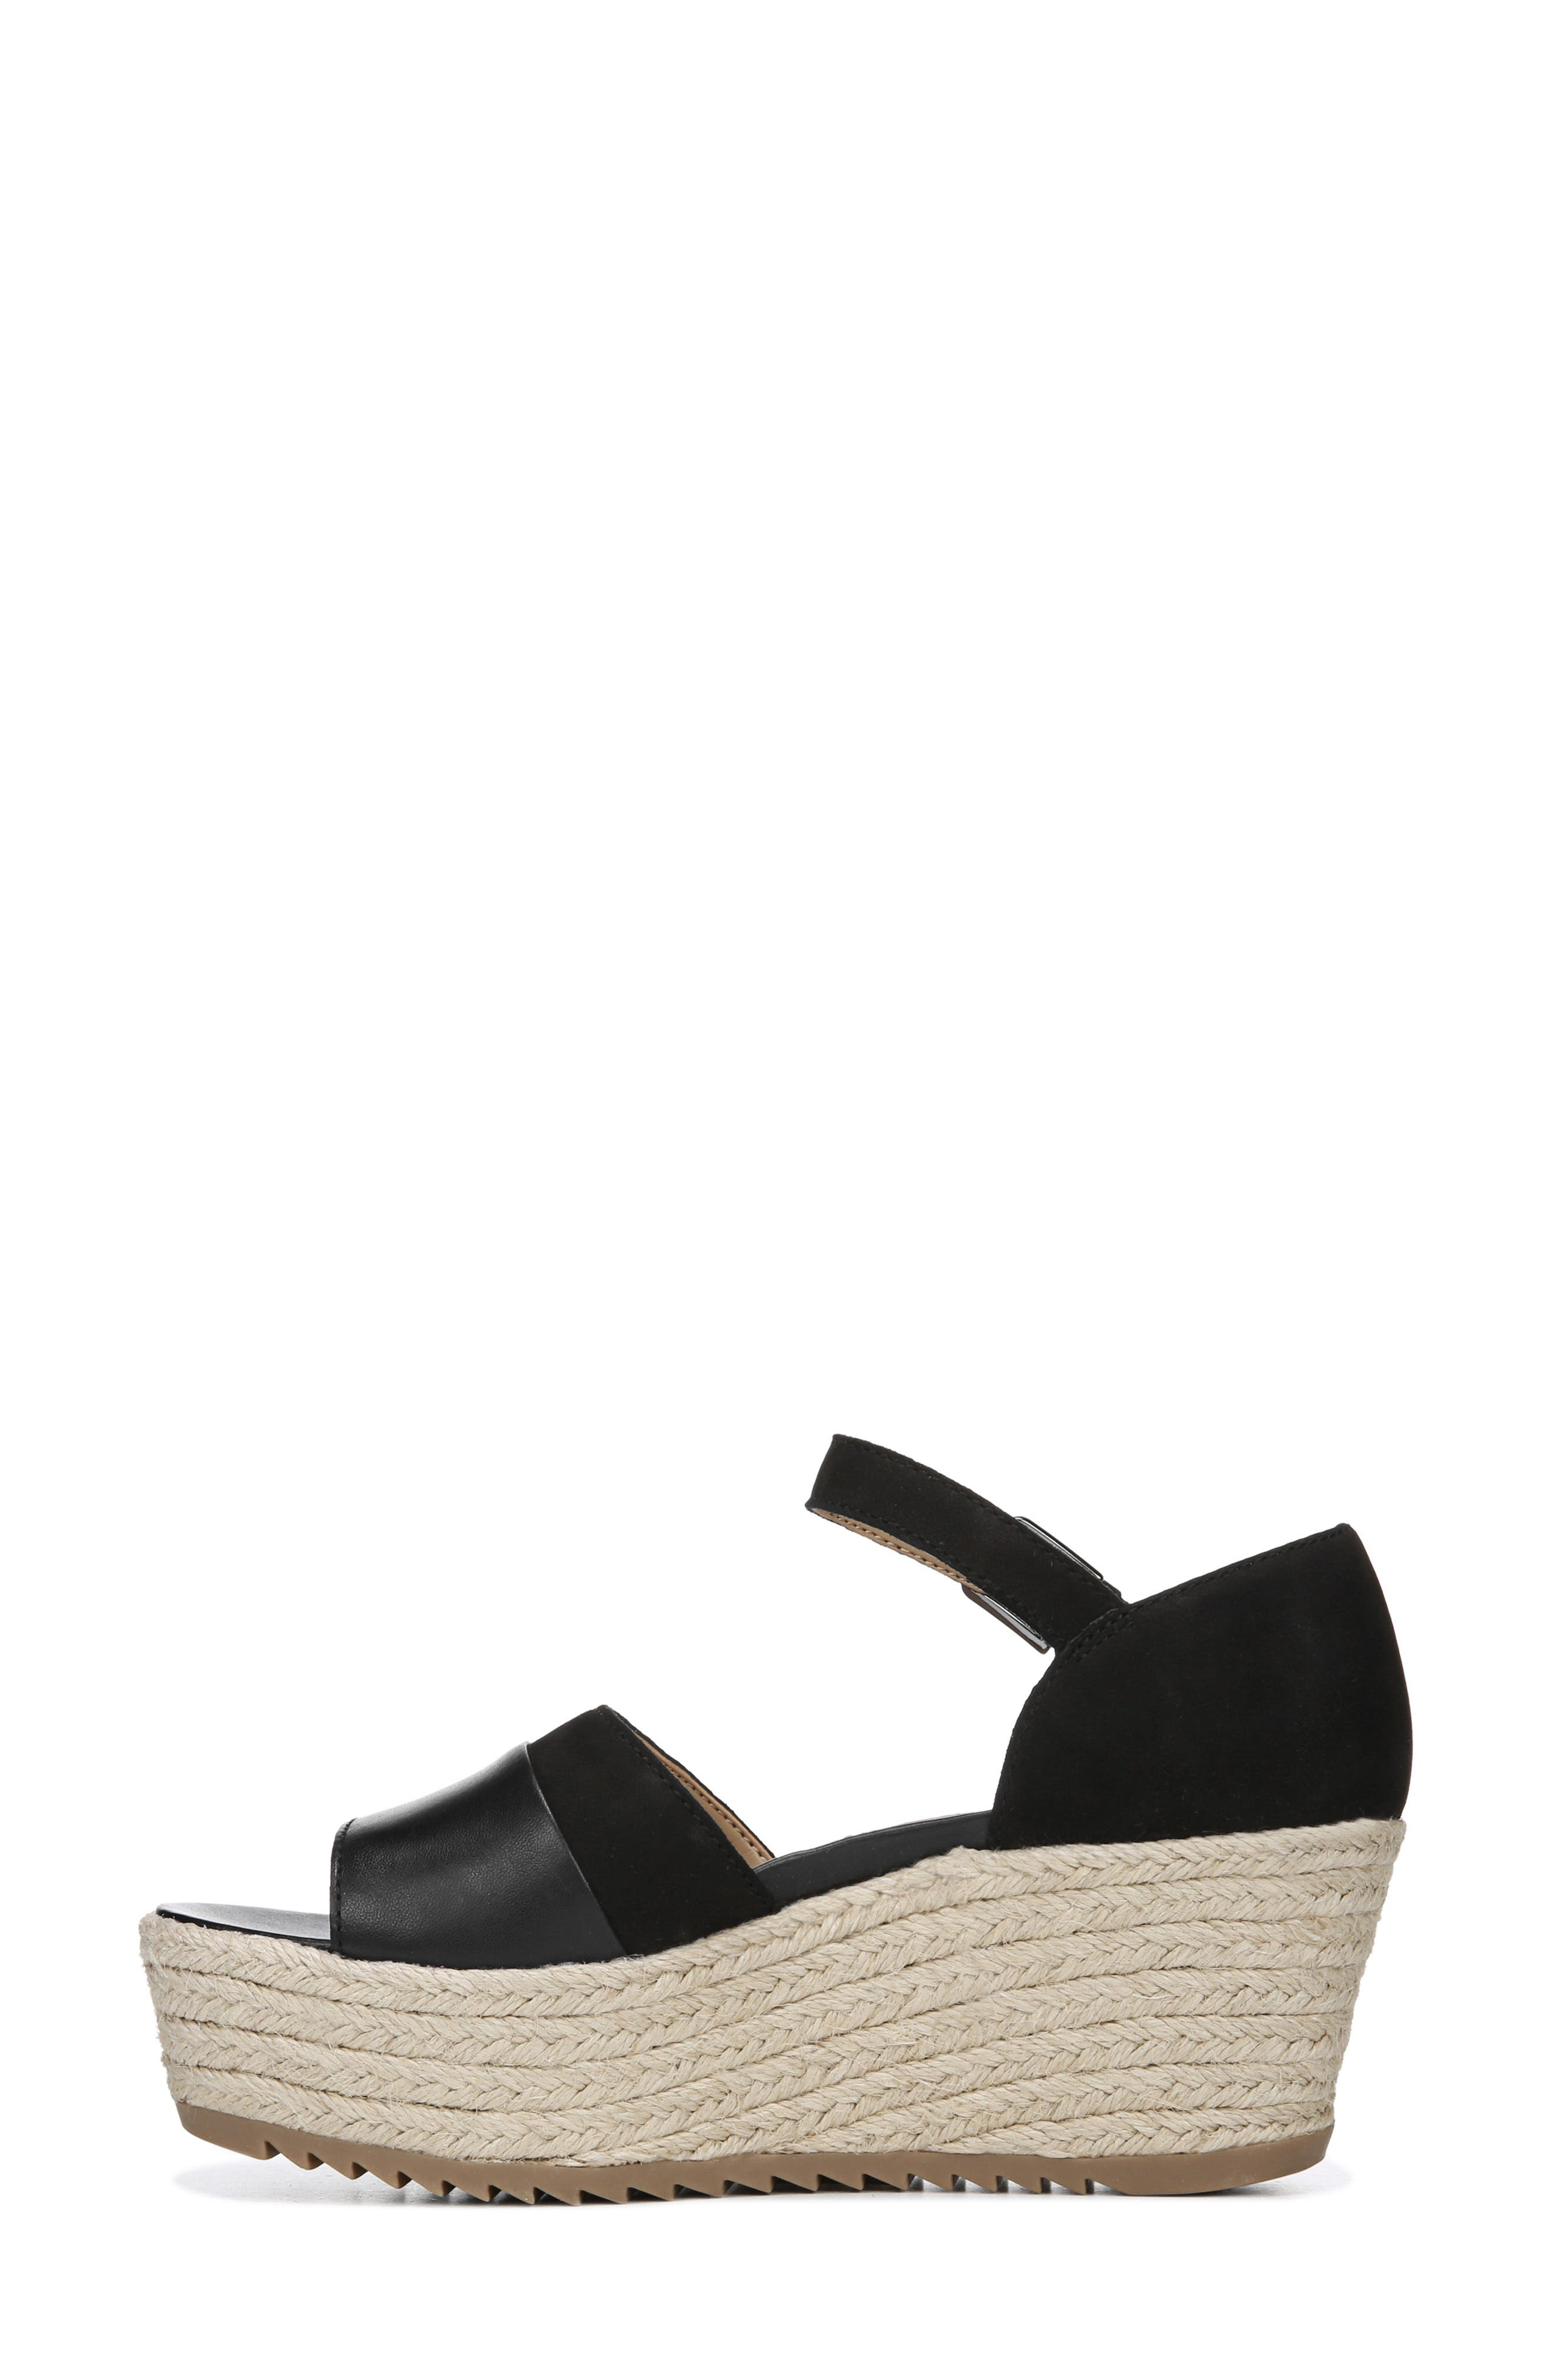 NATURALIZER, Opal Espadrille Platform Wedge Sandal, Alternate thumbnail 8, color, BLACK LEATHER